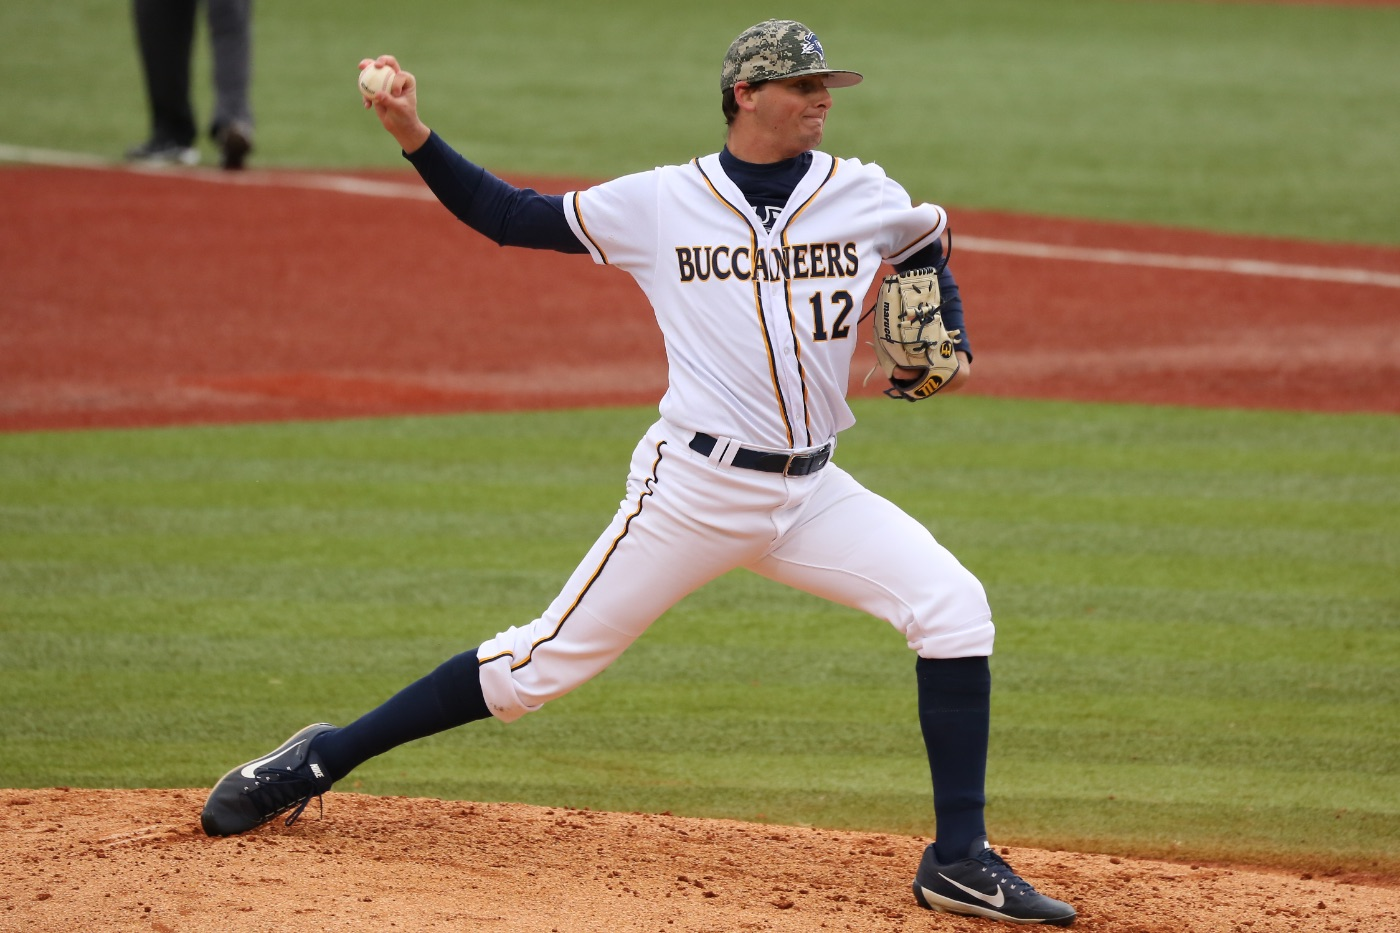 Baseball heads to Knoxville to face Tennessee